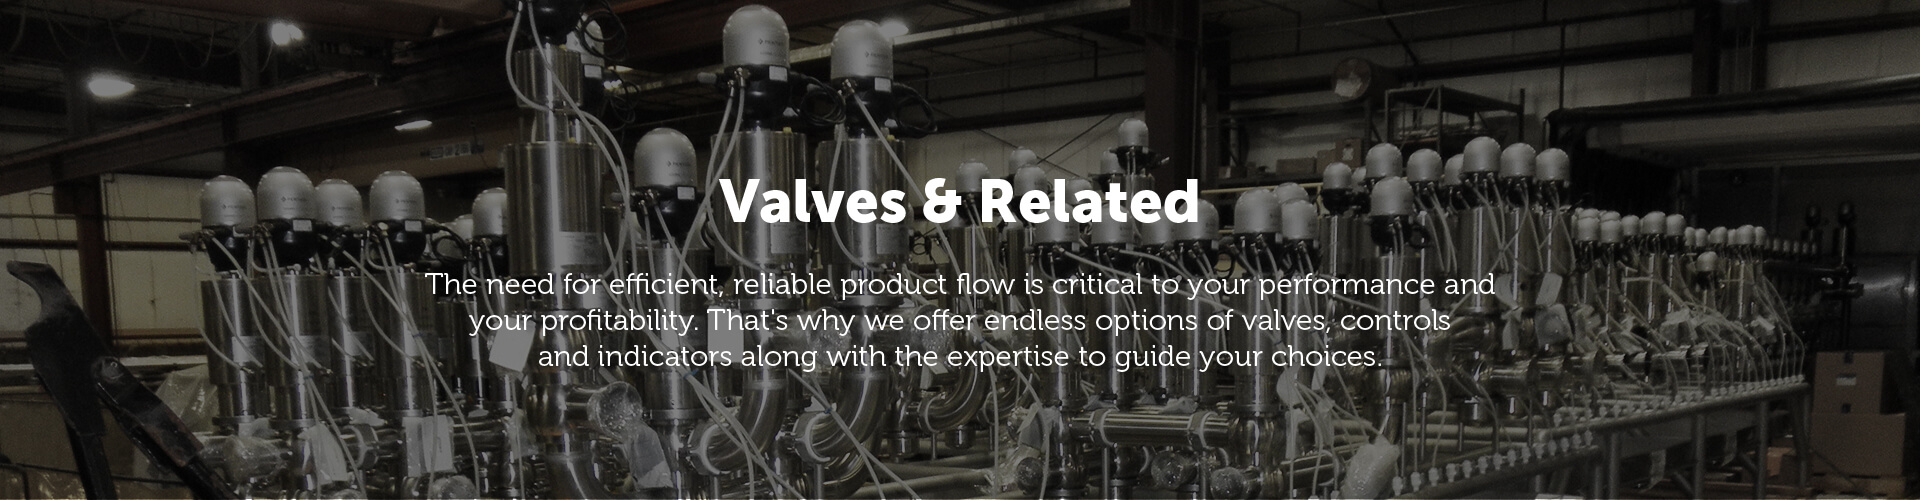 Koss Valves & Related